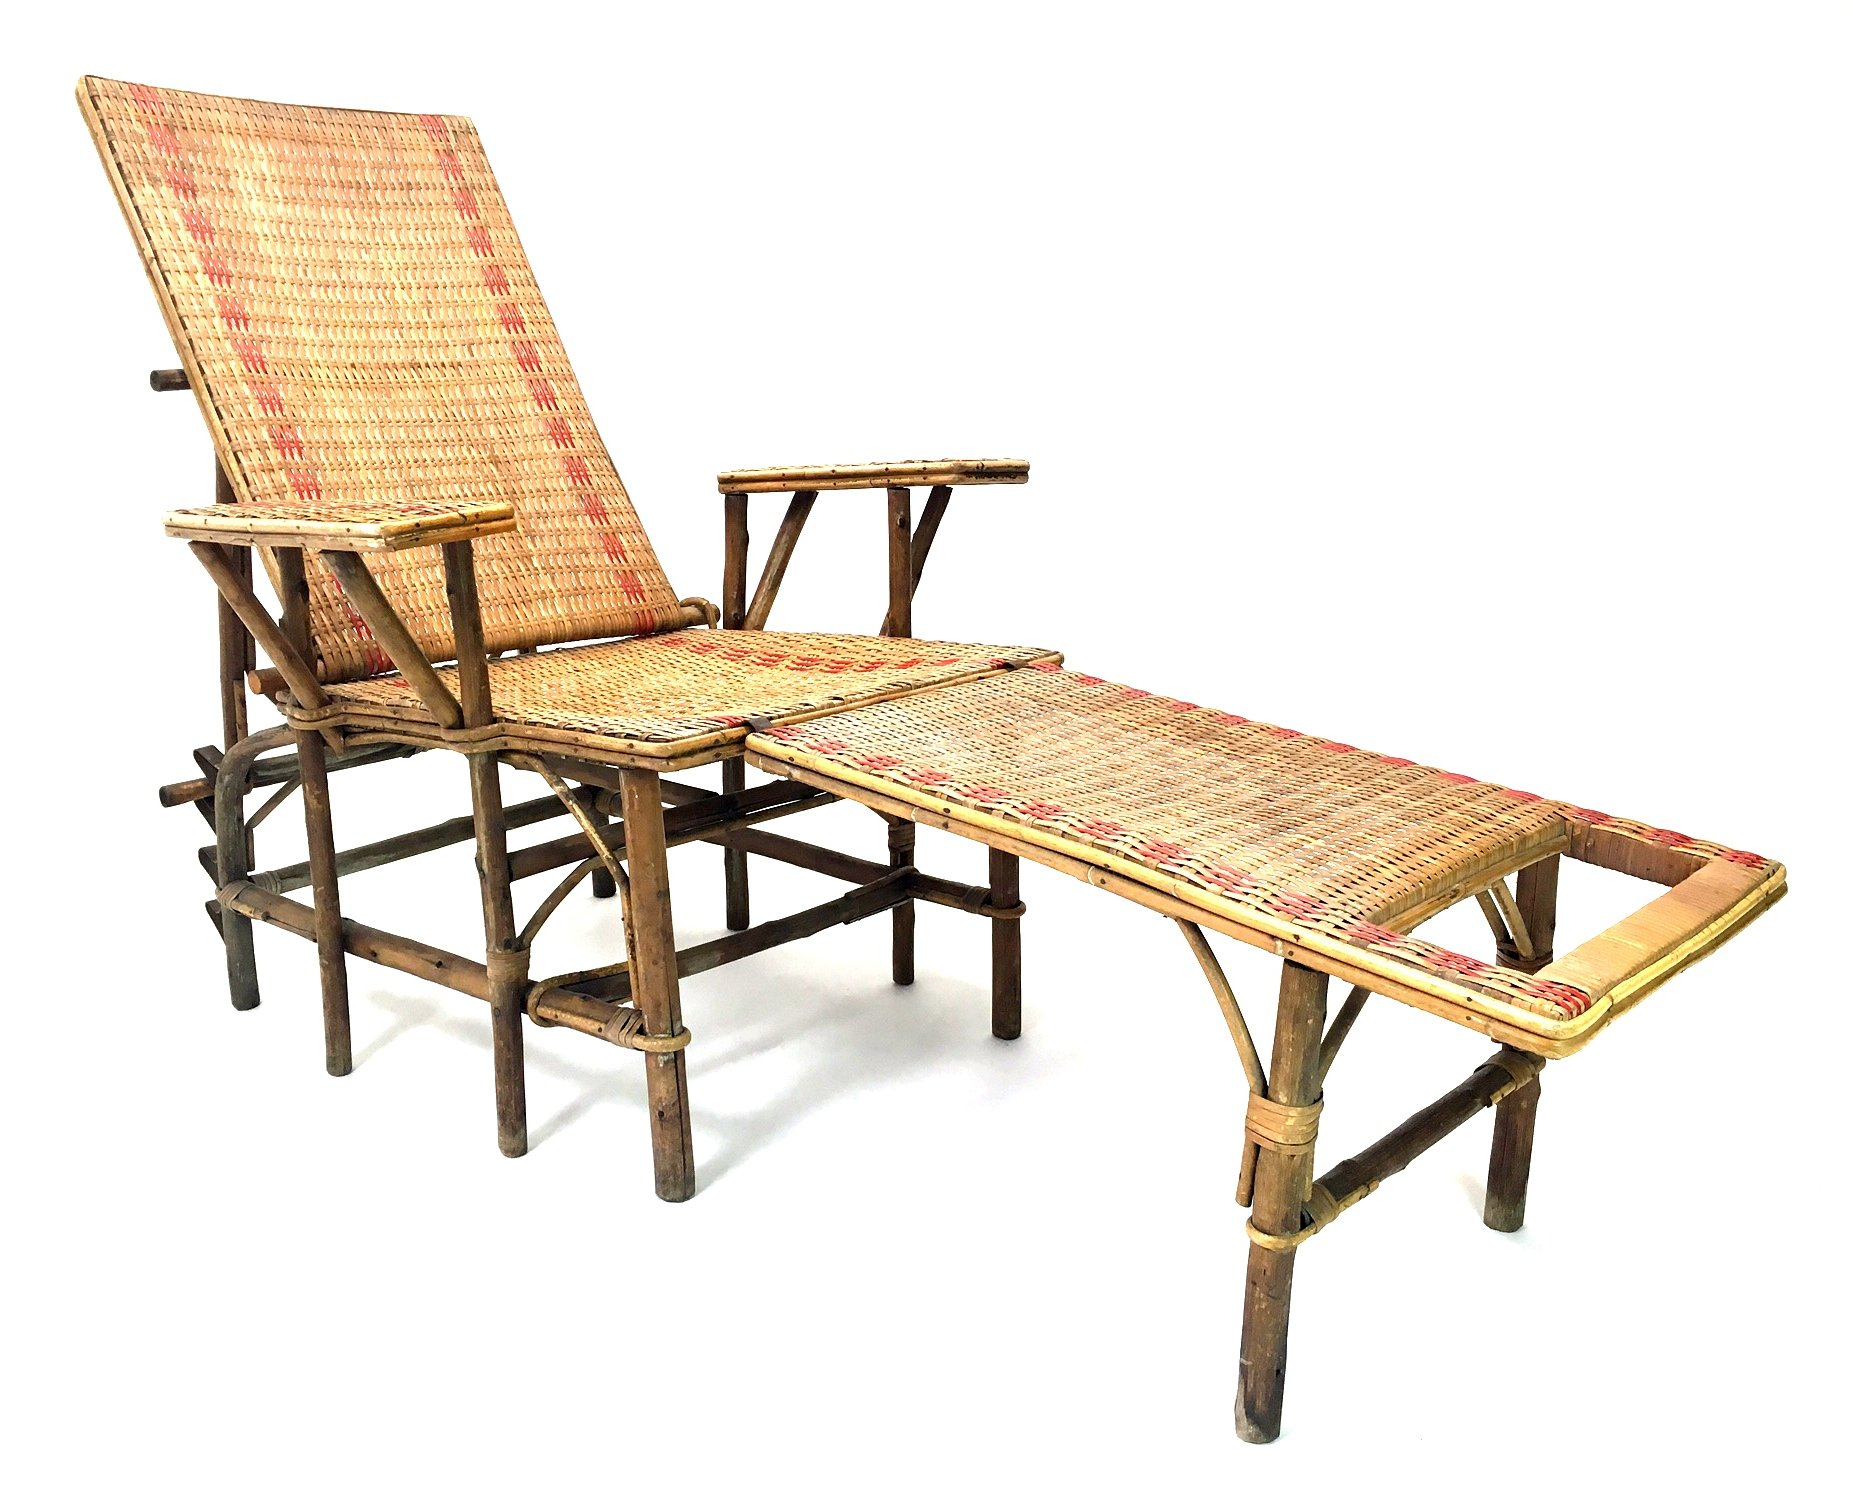 French wicker bamboo chaise longue with footrest 1920s - Chaise longue fauteuil ...